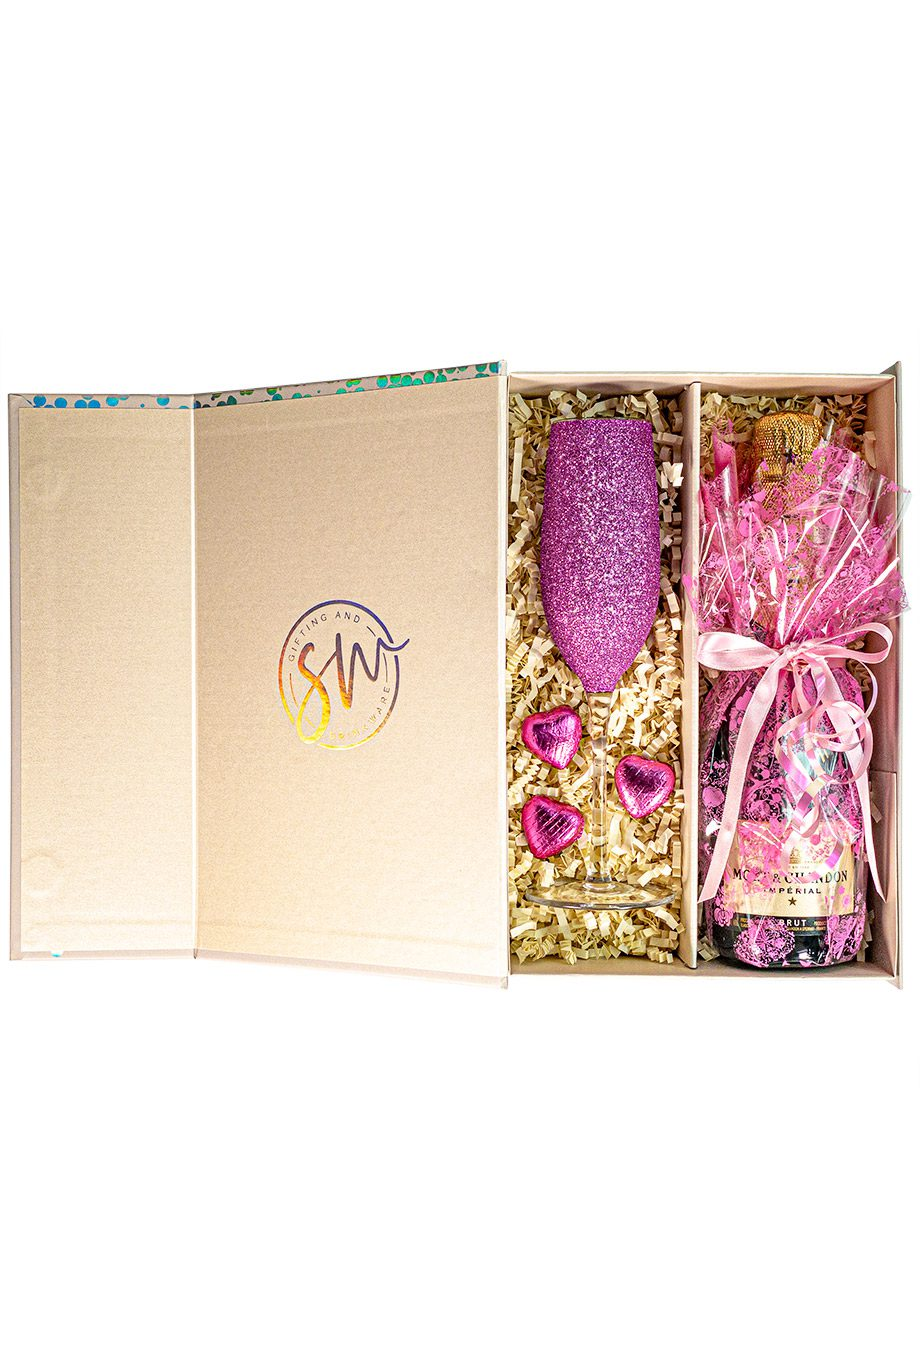 Moet and Chandon   Brut Imperial   37.5cl   Pink   Sparkleware Gift Set   Keico Drinks